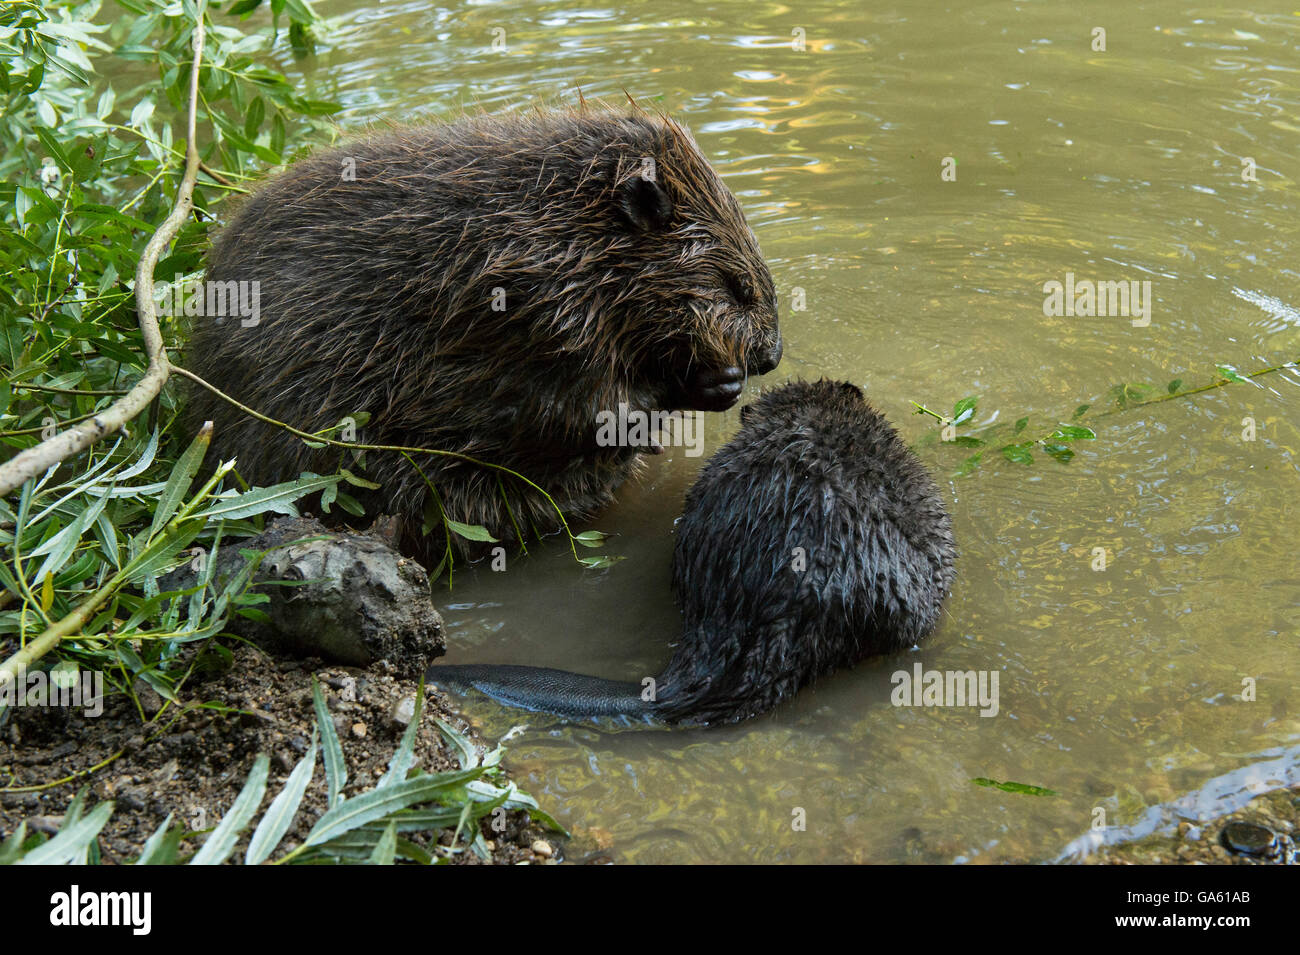 Two Beavers Stock Photos & Two Beavers Stock Images - Page 3 - Alamy